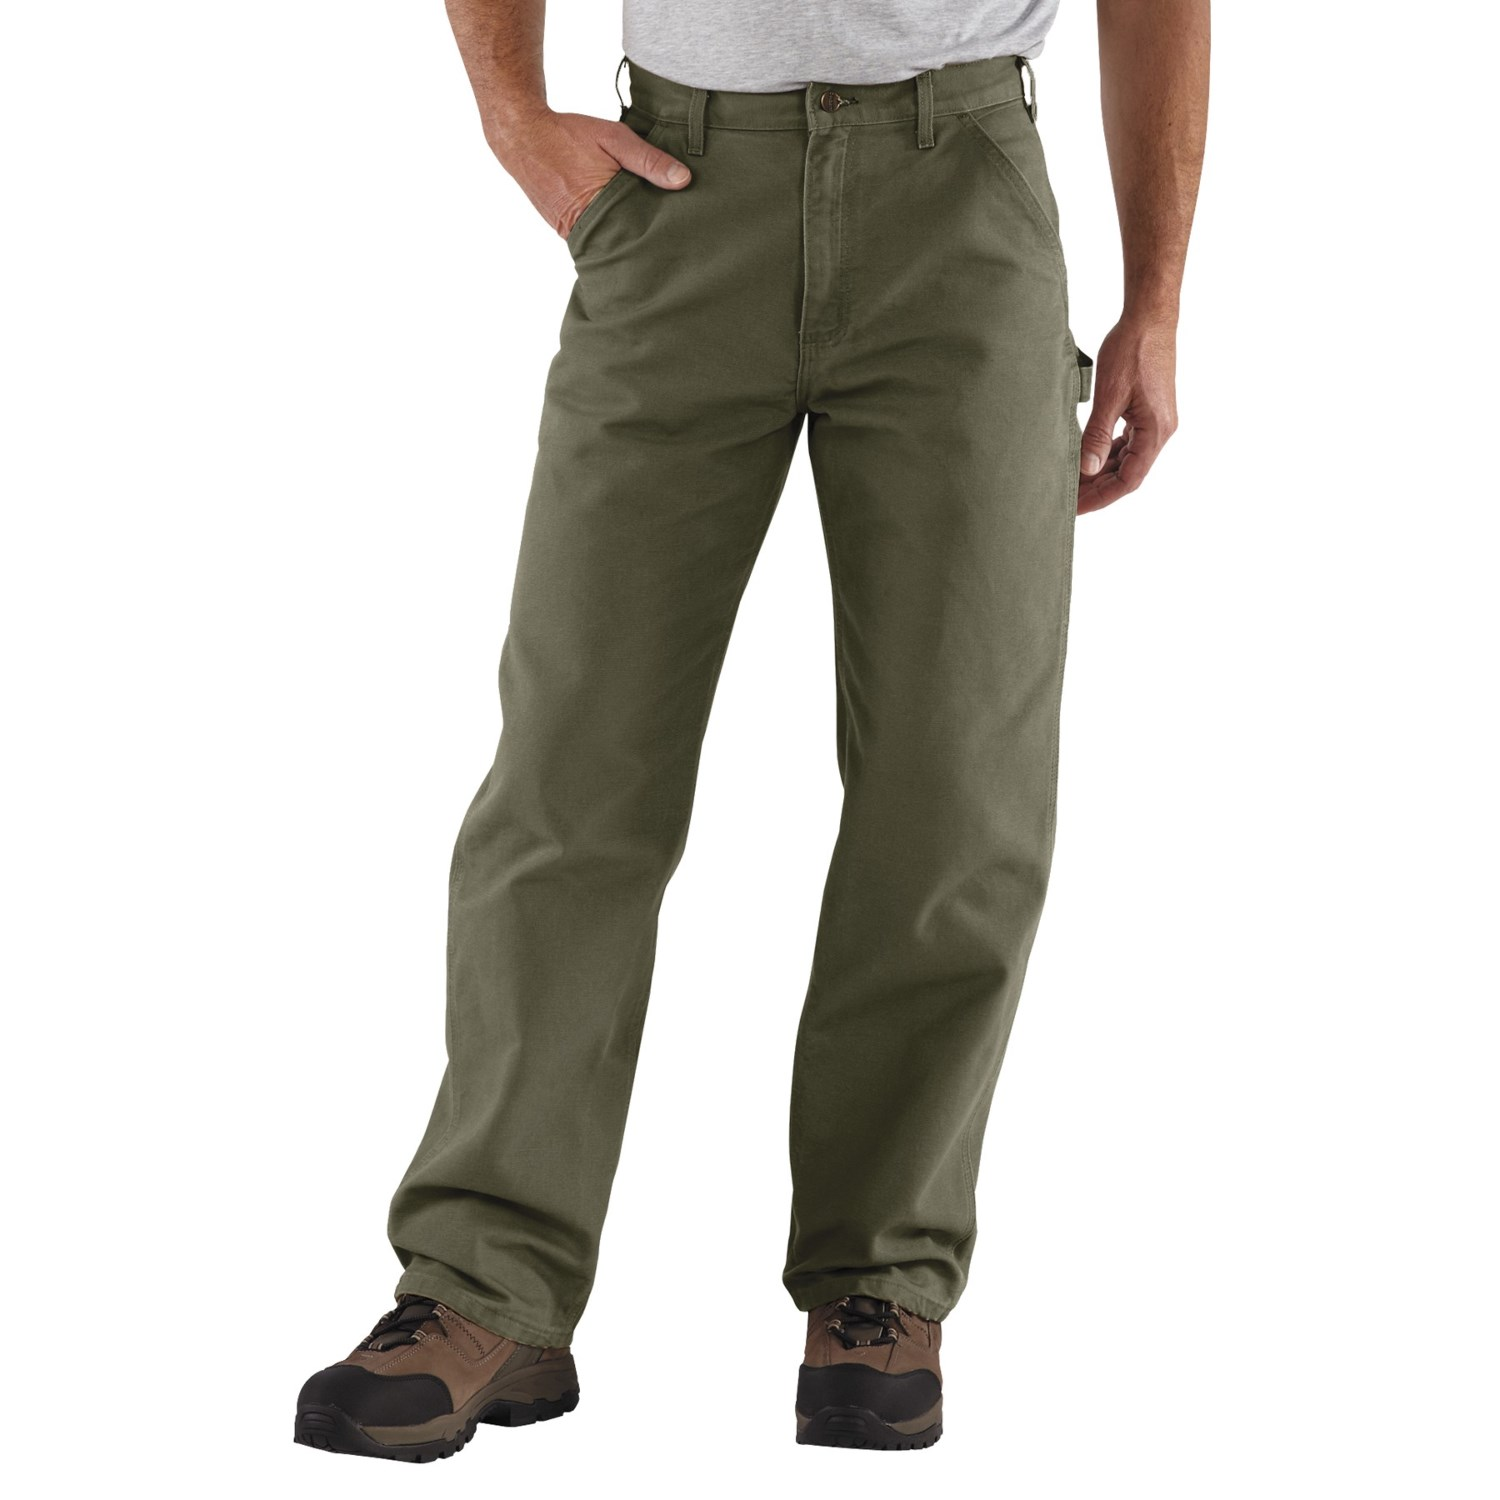 Tackle the toughest jobs in a pair of men's work pants Whether you're turning wrenches on classic cars, unloading pallets in a loading dock or welding girders in a high rise construction site, regular men's pants just can't stand up to stains, spills and potential hazards of the job.